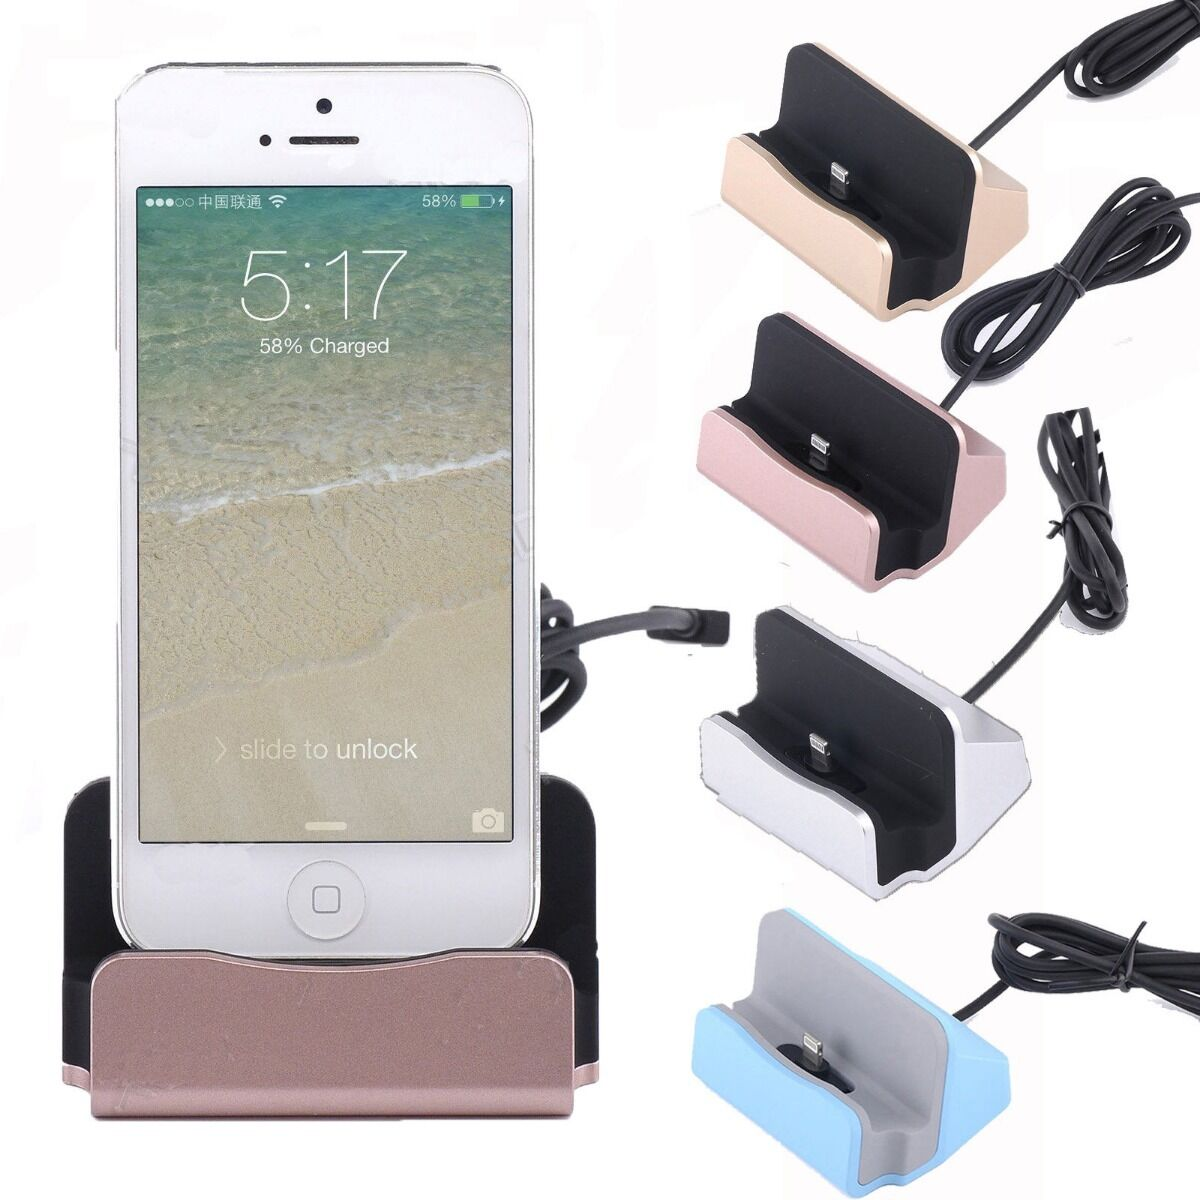 Desktop Charging Dock Charger Data Sync Station Cradle for iPhone SE 6 6S 7 Plus | eBay